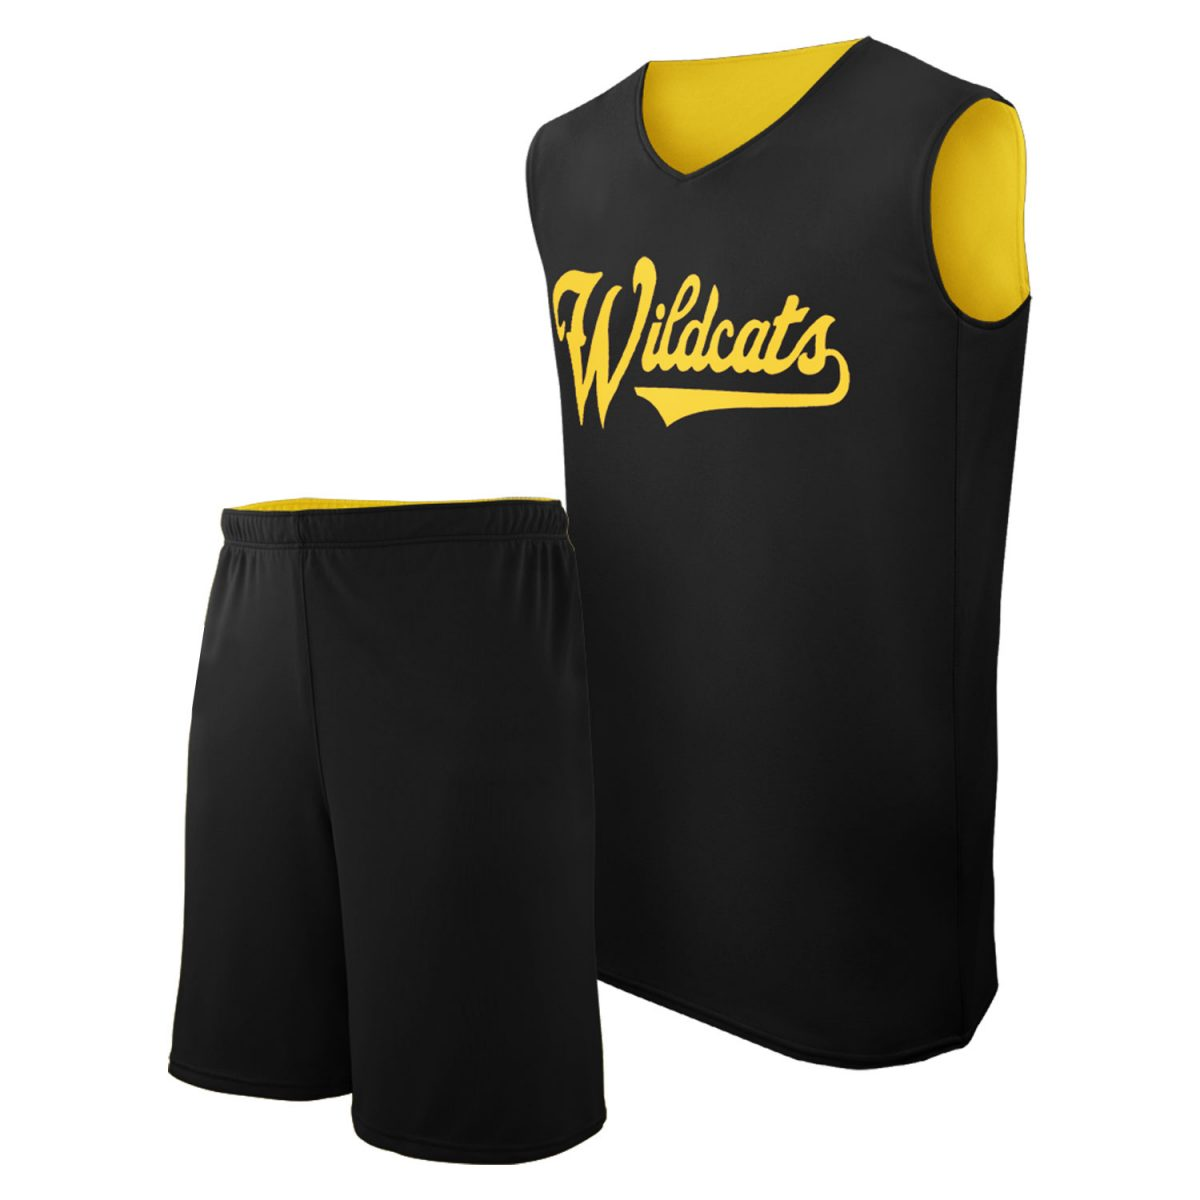 Boys Basketball Uniforms Manufacturers in Argentina